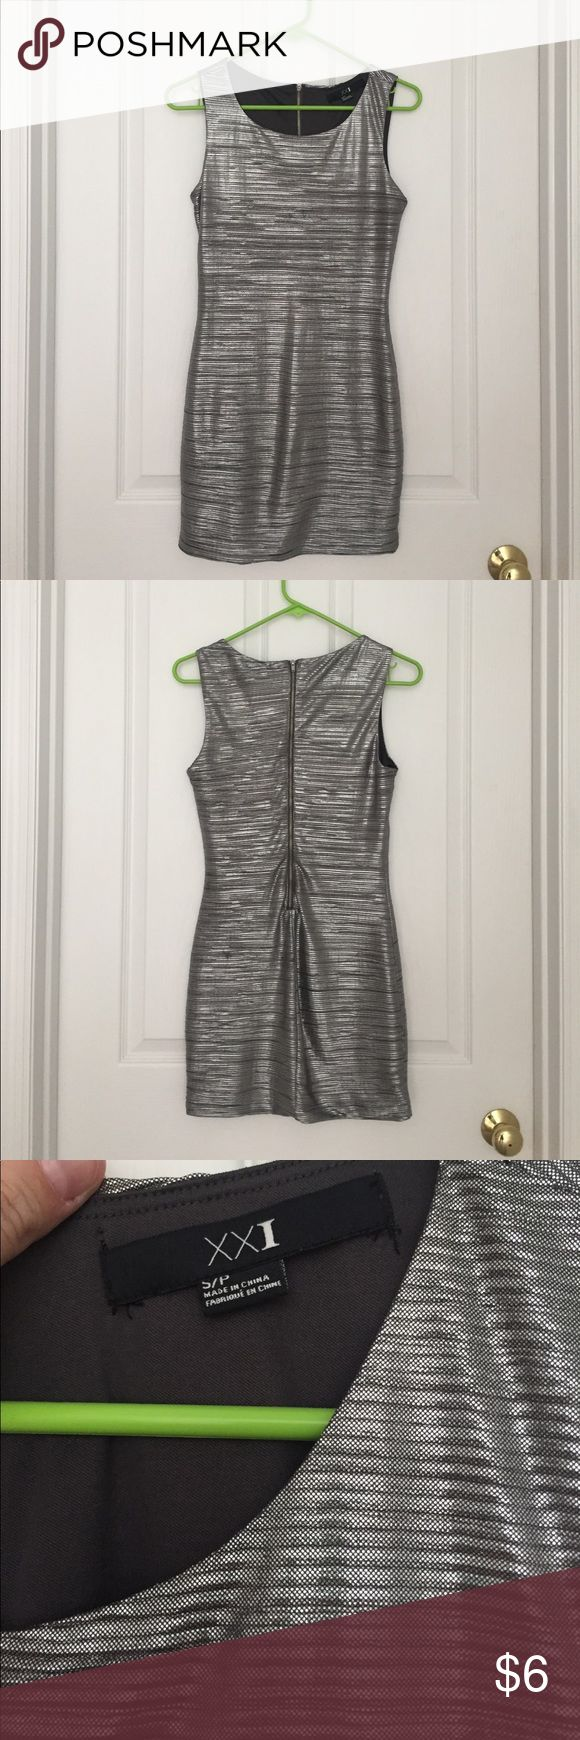 Forever 21 Silver Small Party Dress Super cute good used condition Silver party dress from Forever 22, size small. This dress was only worn once! Fun shiny silver material makes it a great party/going out dress. Tank style with somewhat of a rouching style and a zipper back. Forever 21 Dresses Mini